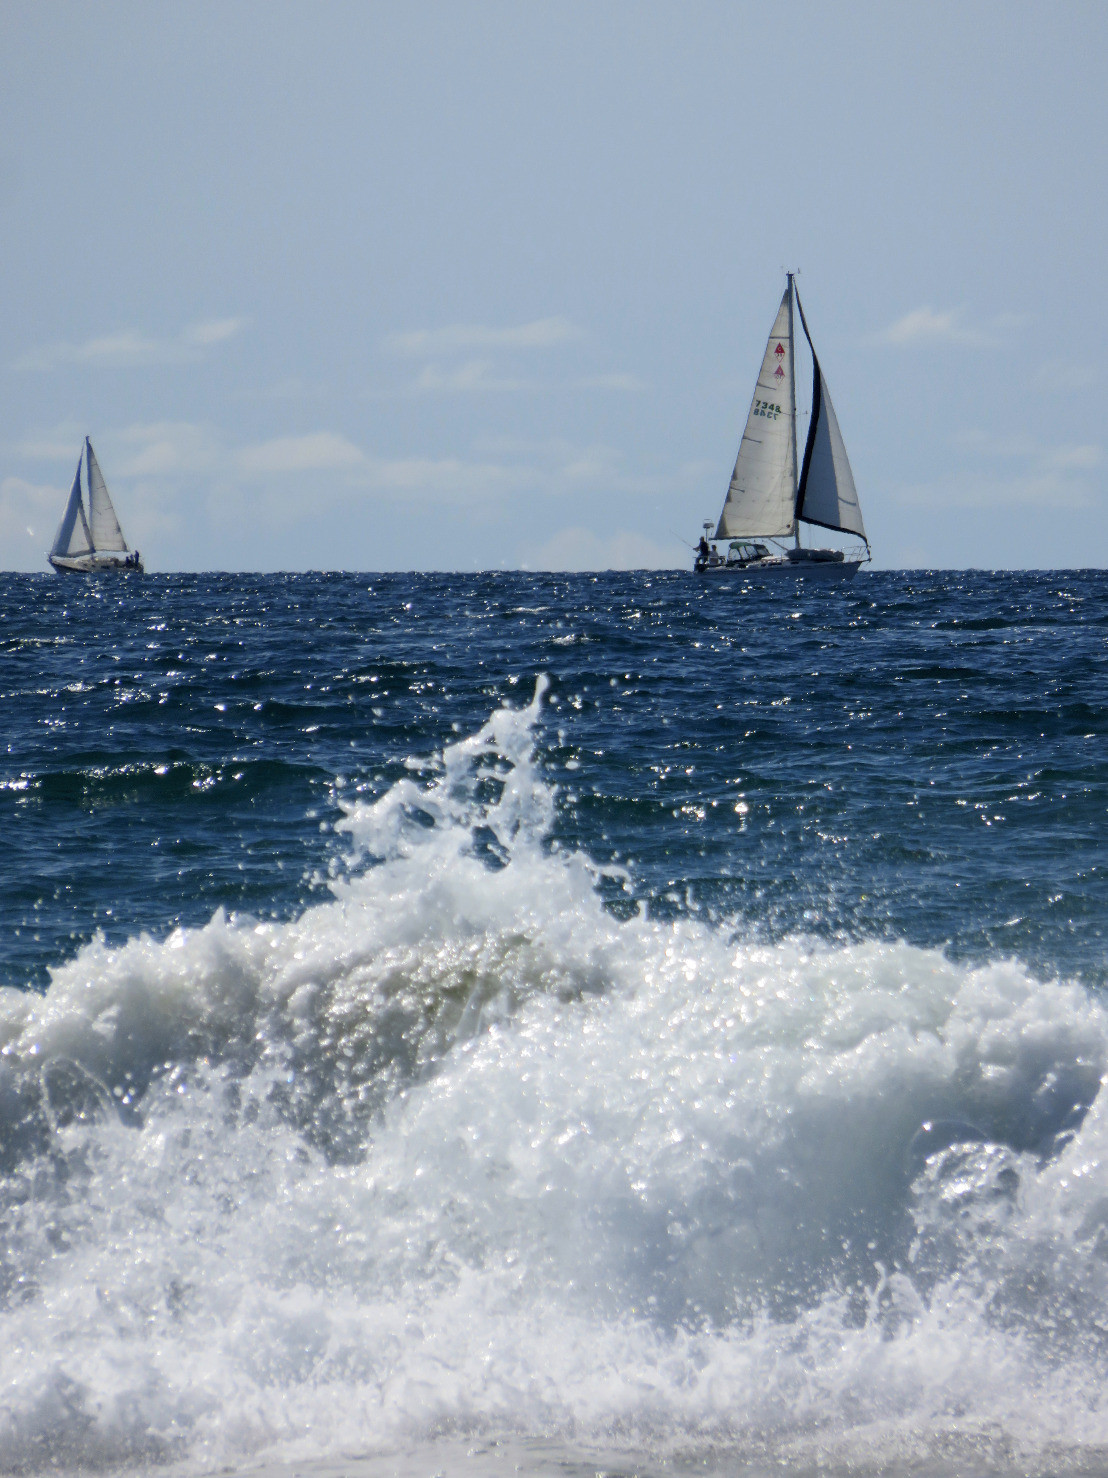 kelsonv: Sails and Spray.